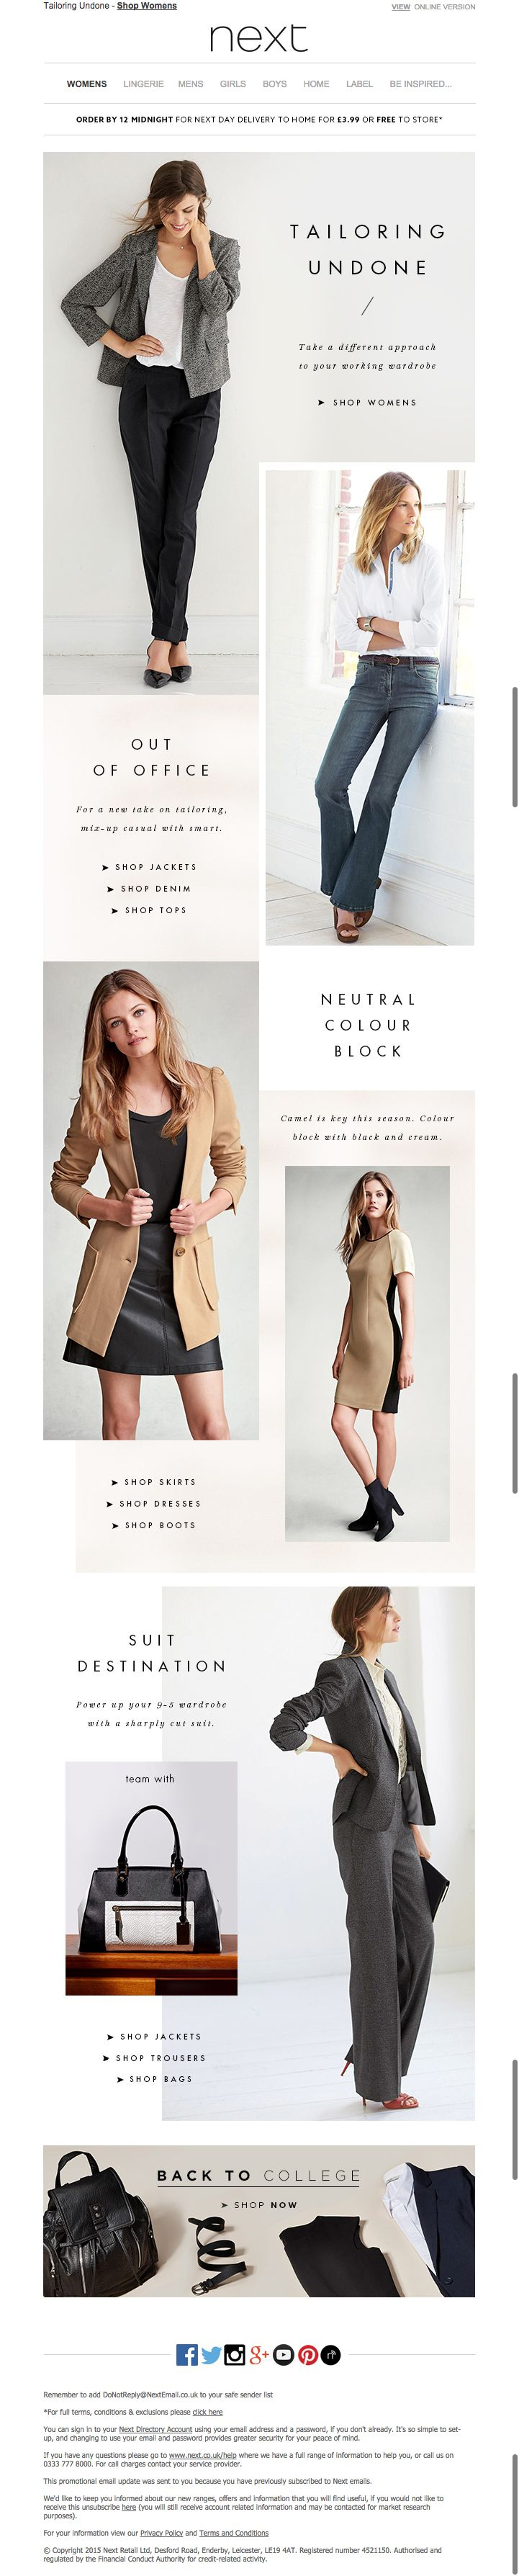 next work wear email / back to school